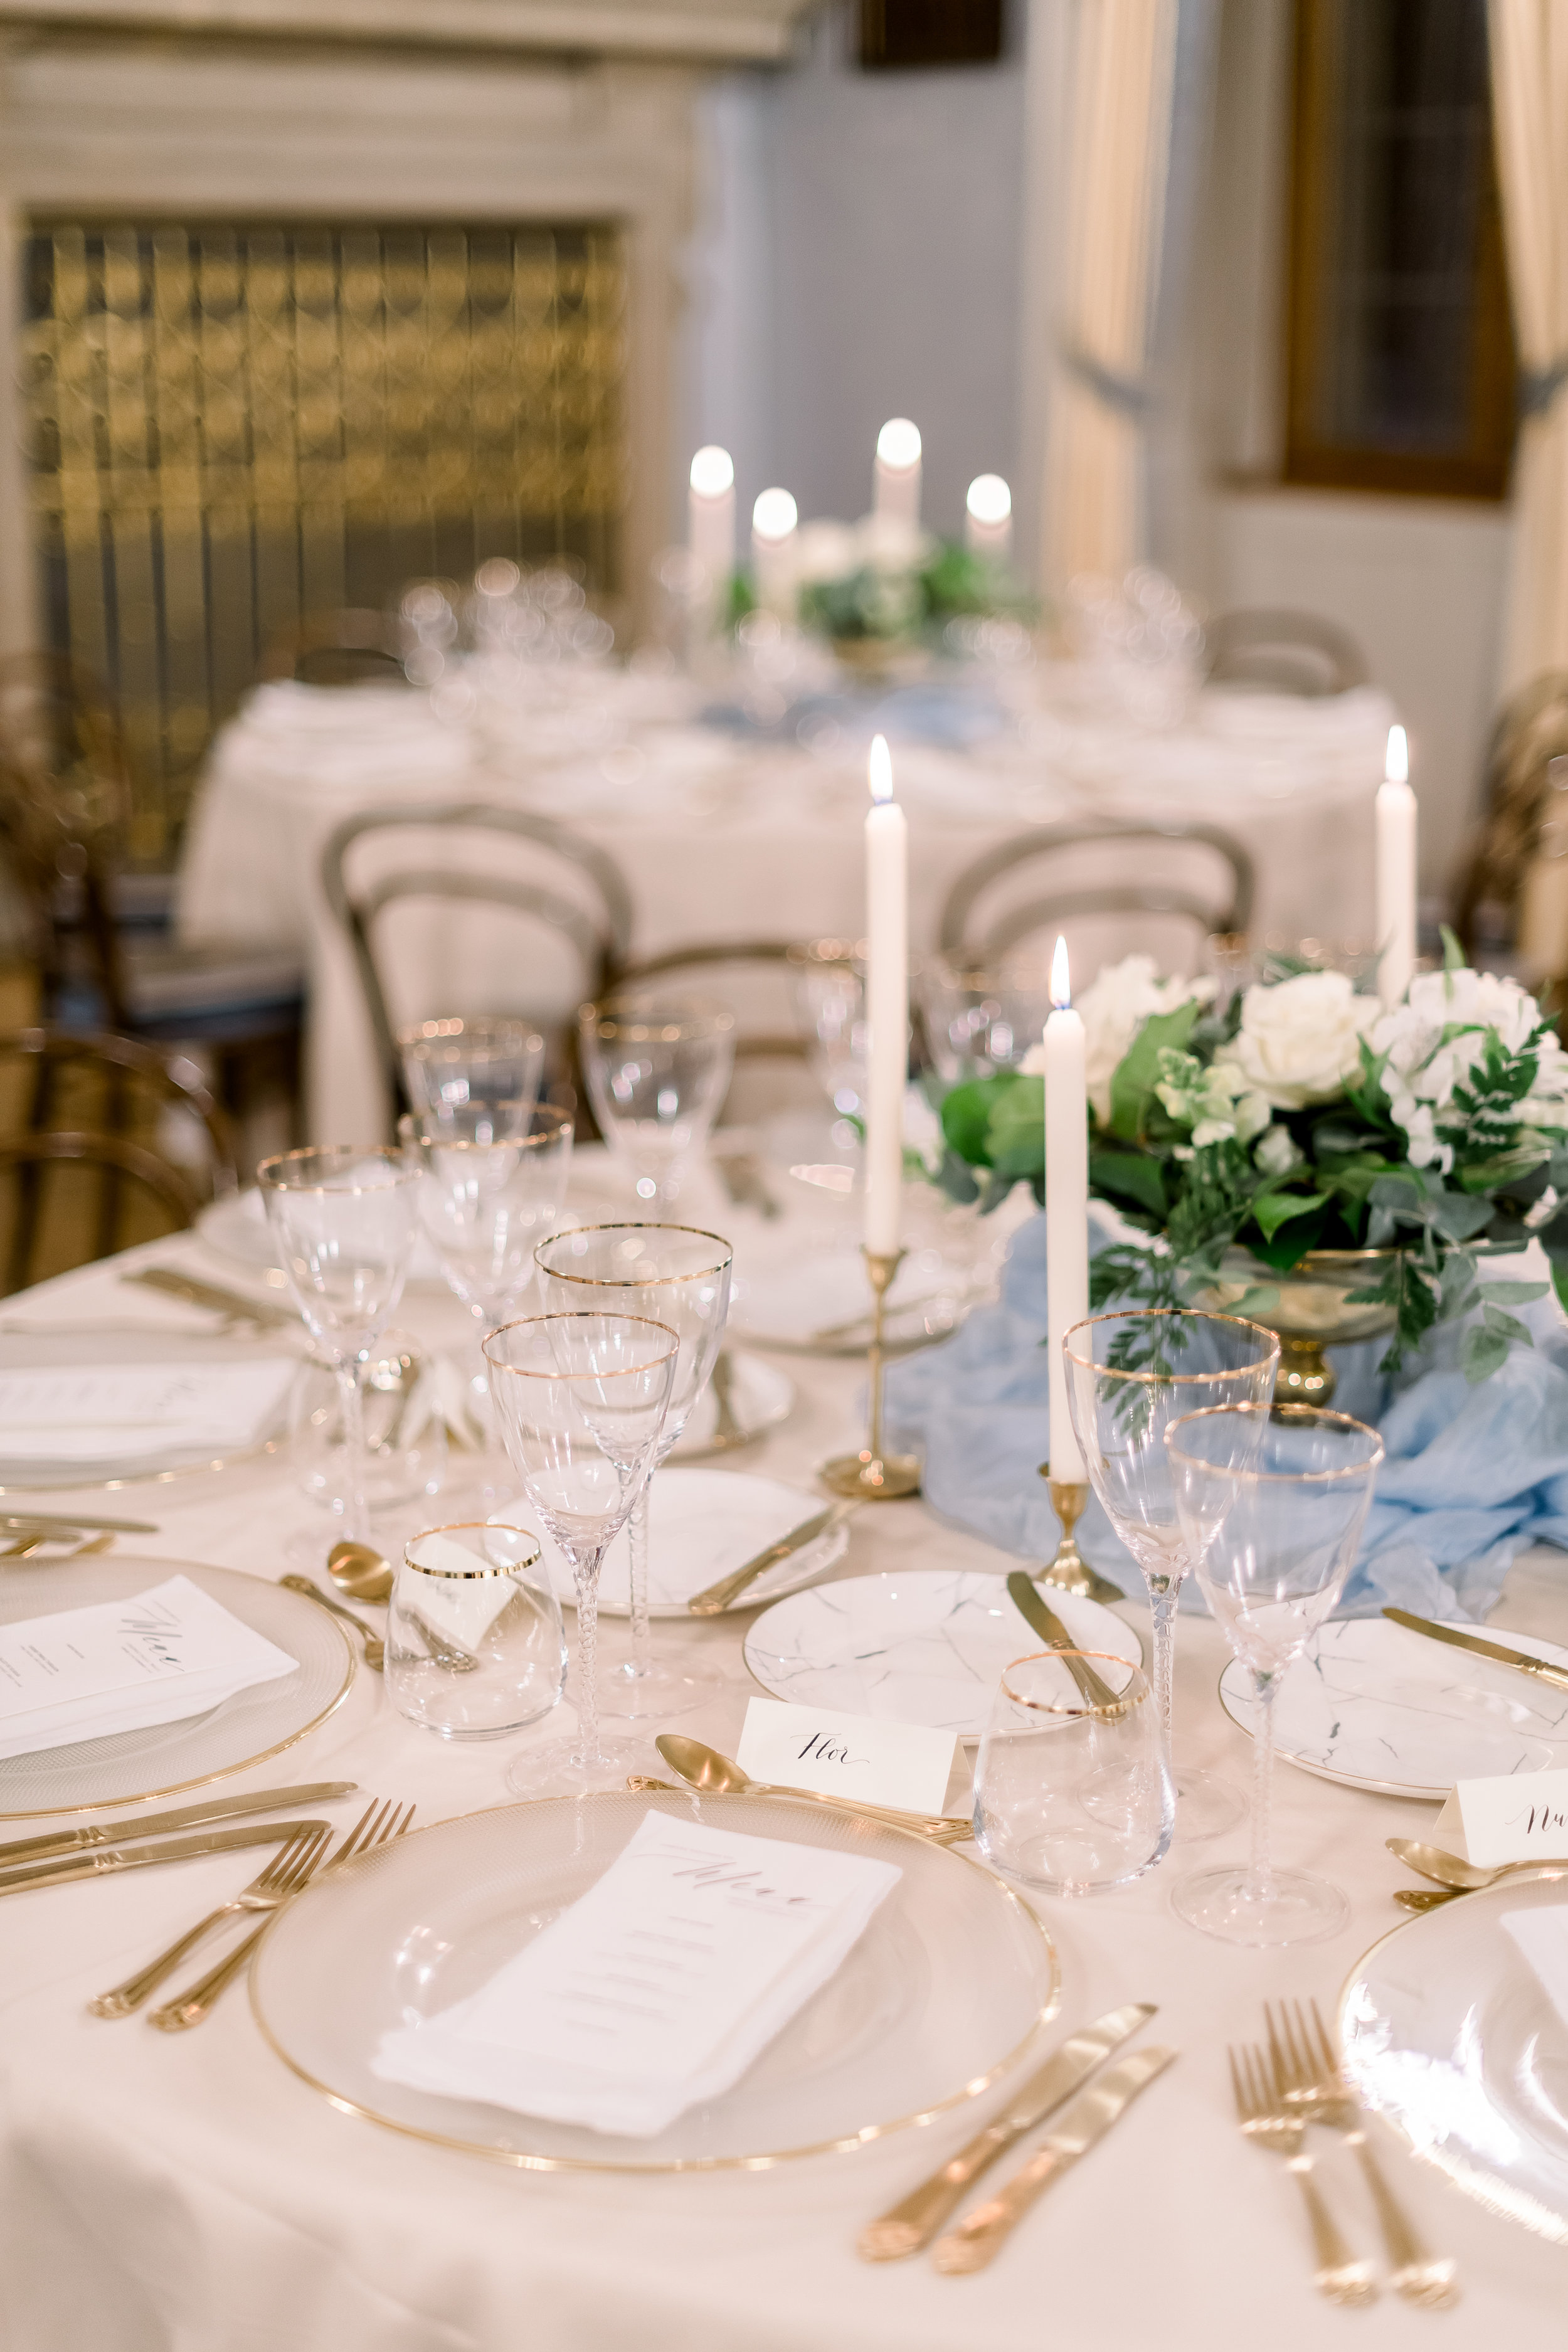 Maria Reidy Events | Destination corporate event  | Lobkowicz Palace, Prague